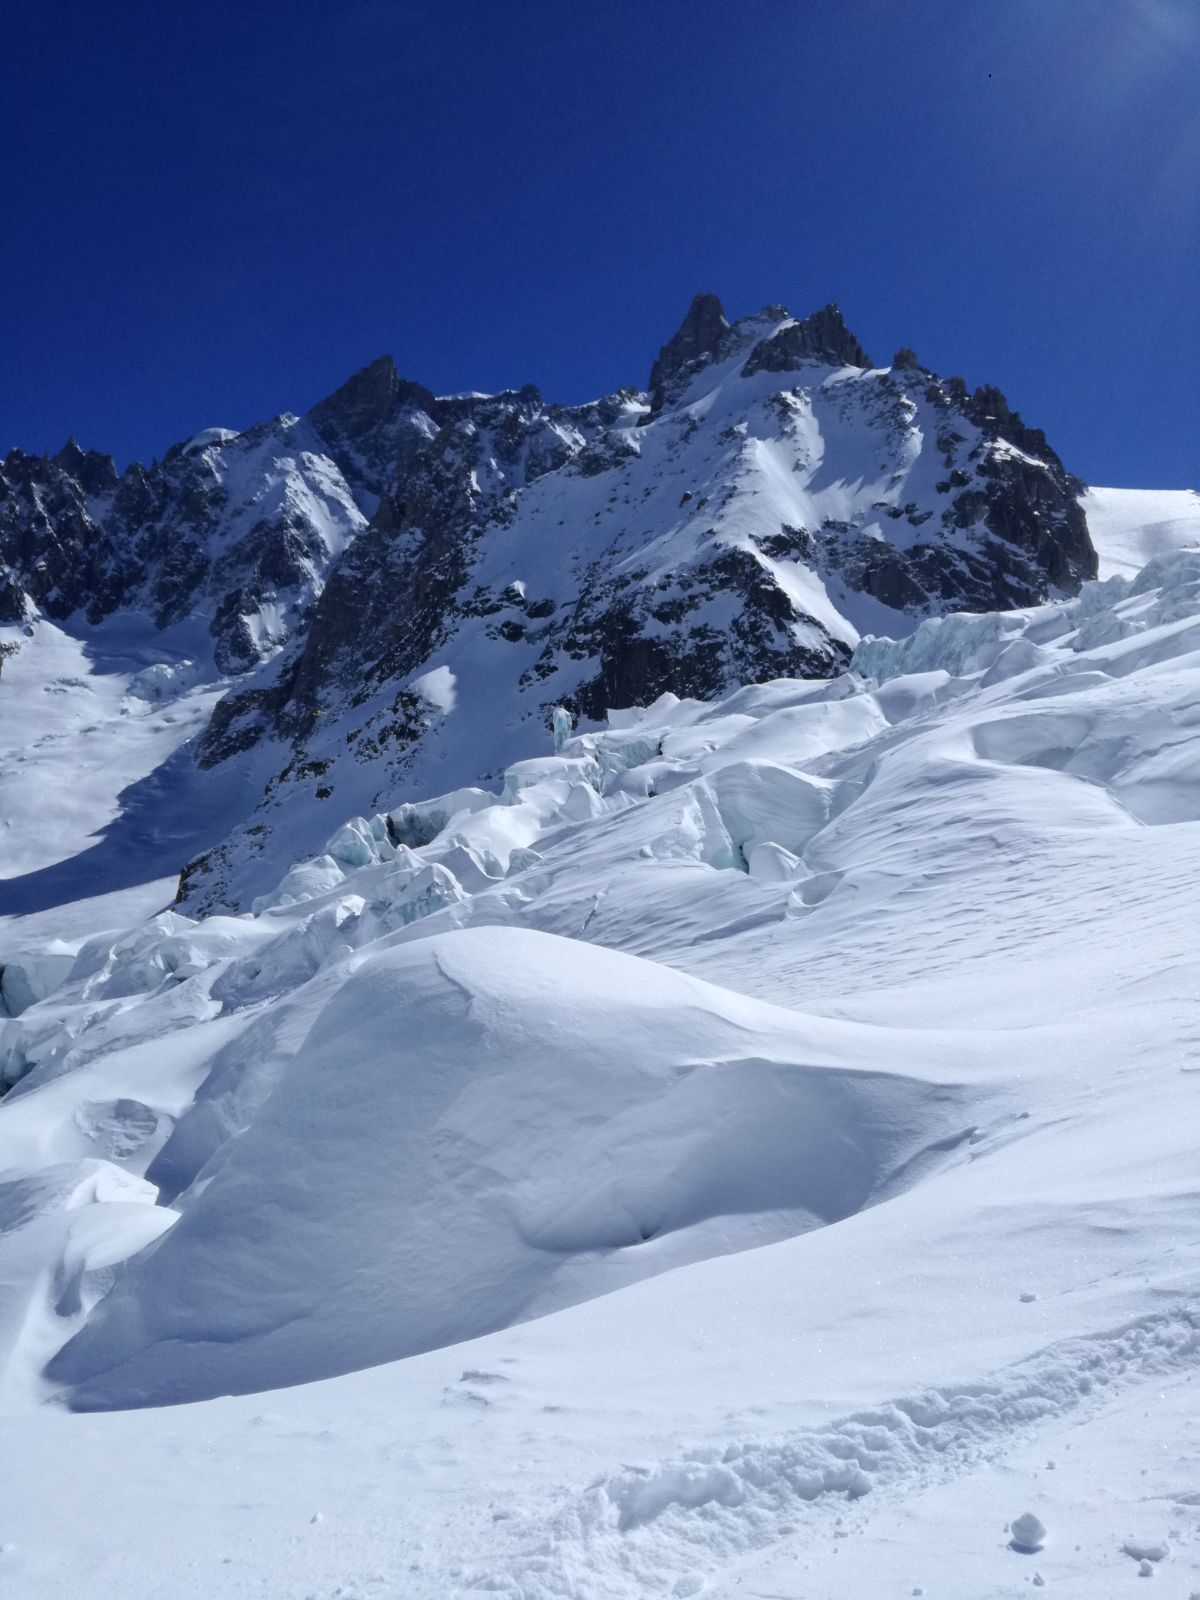 vallee blanche guide alpine proup (23)